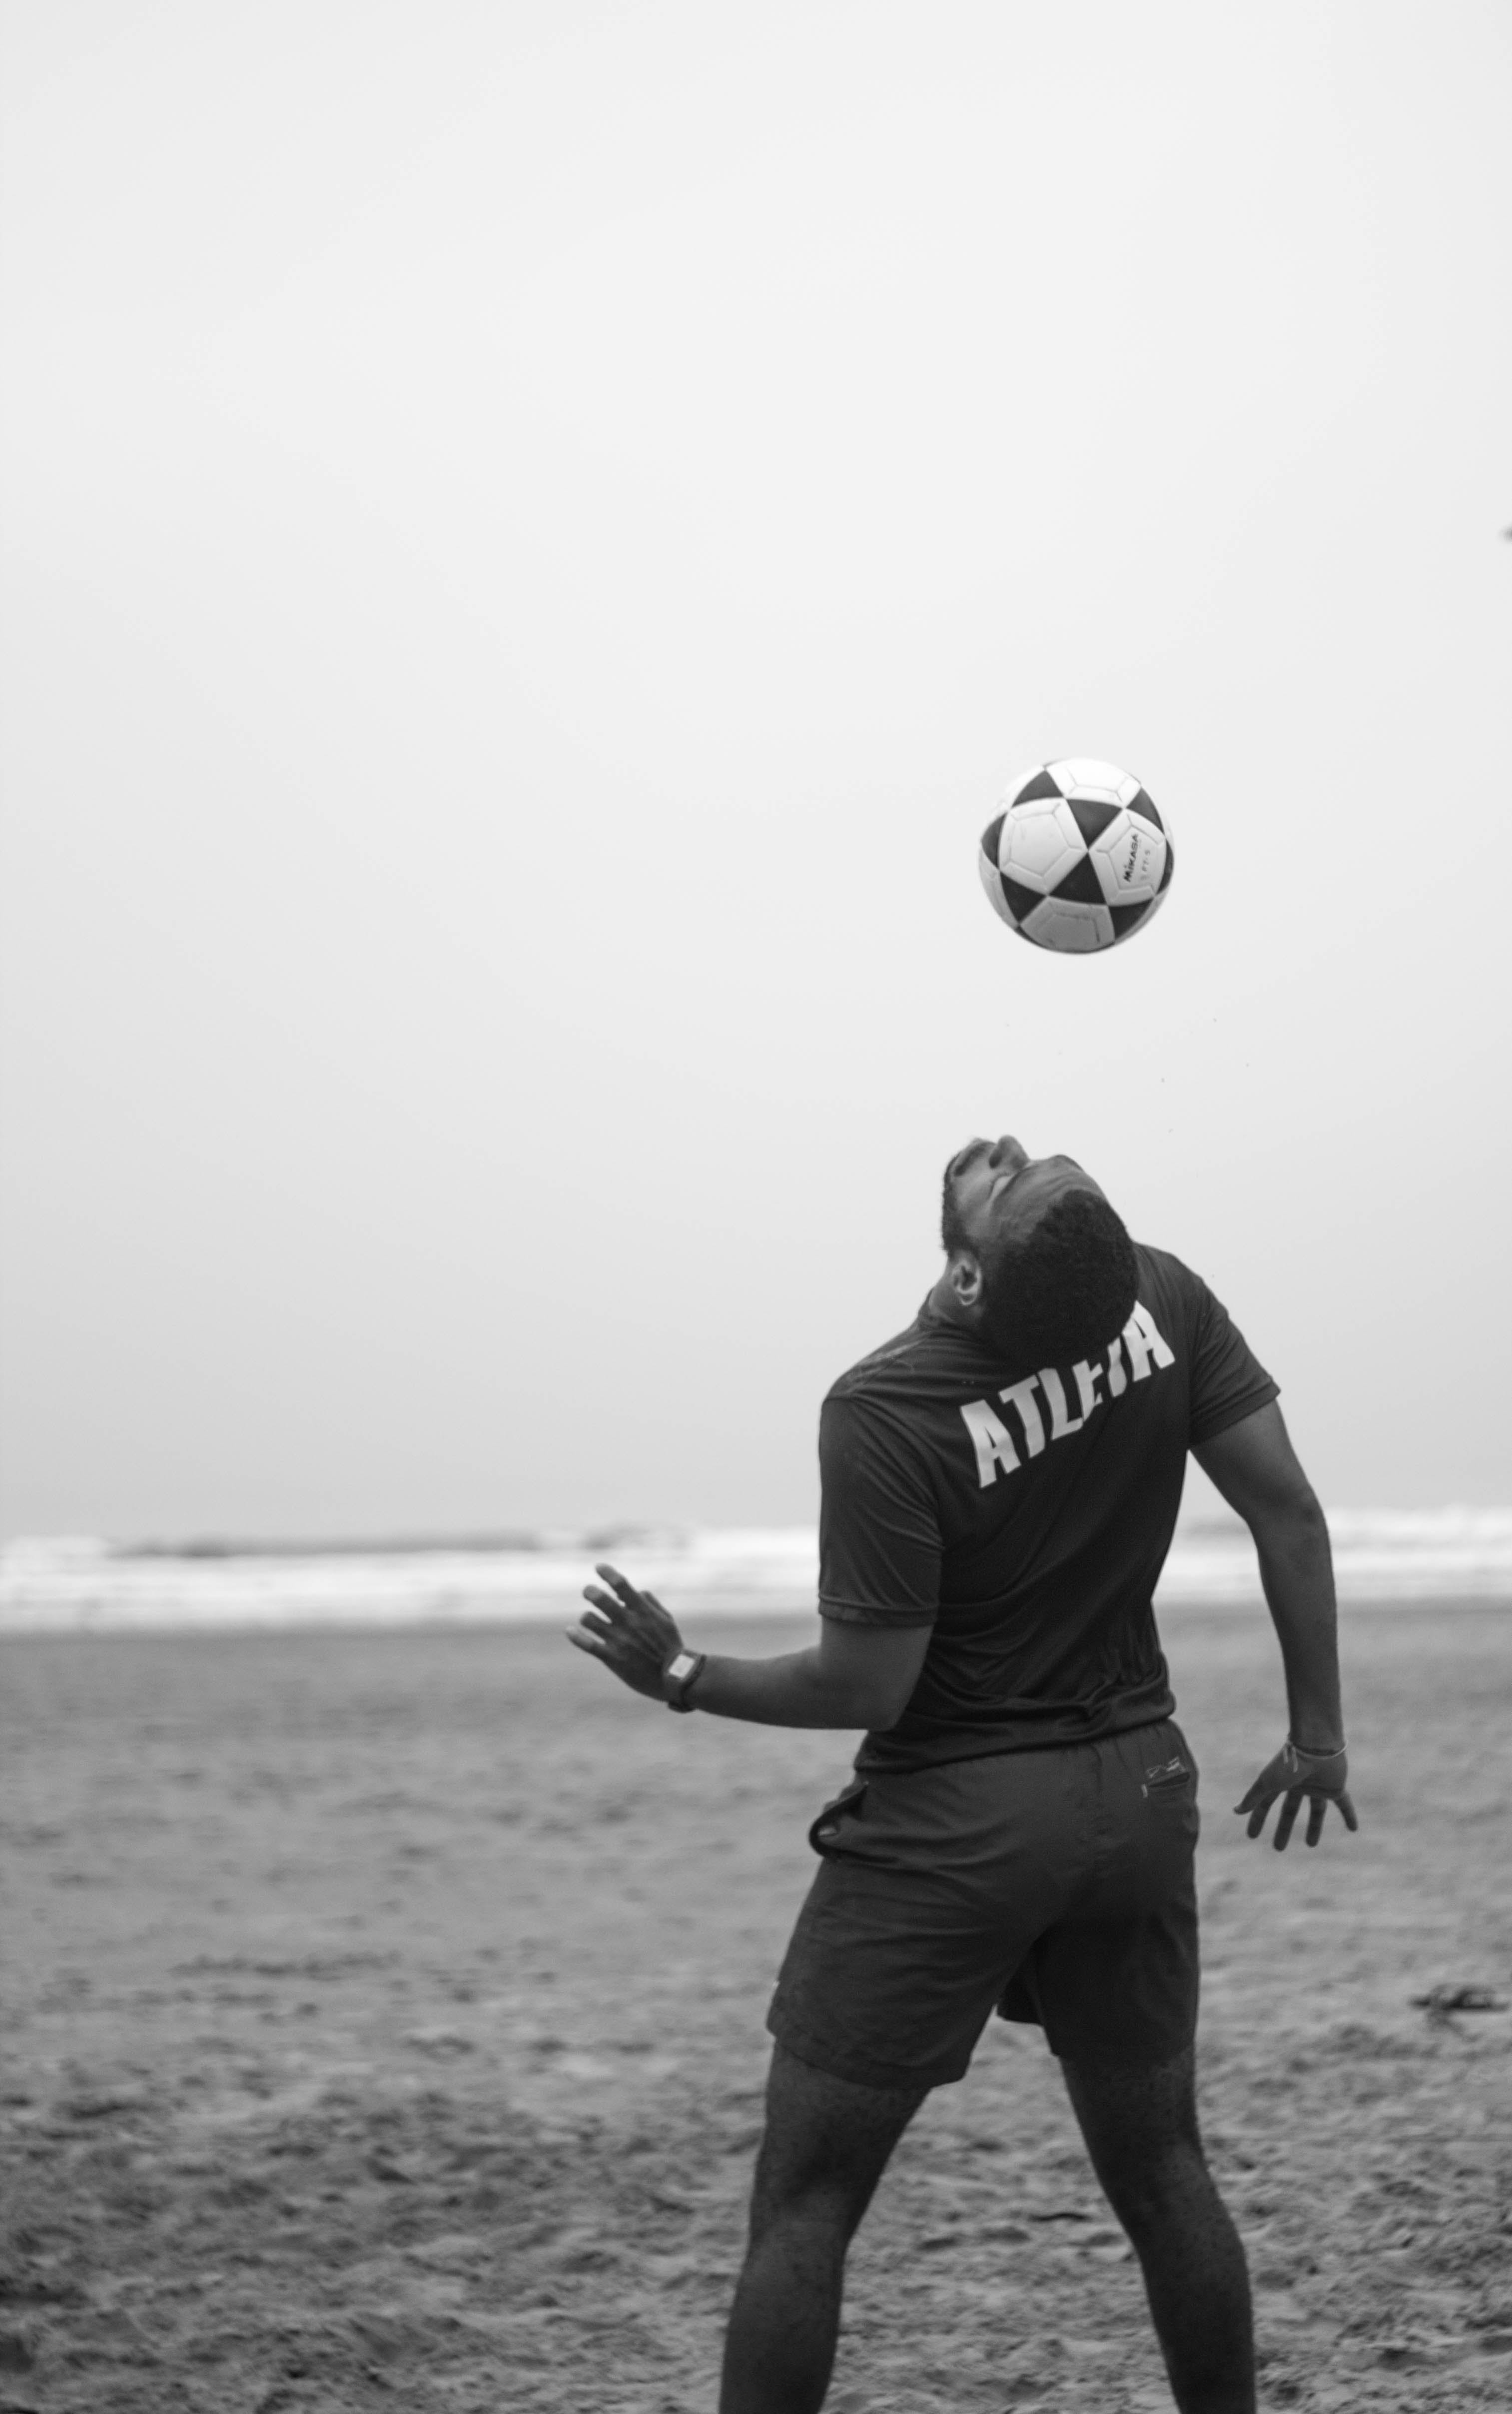 Man on Shore Doing Soccer Trick